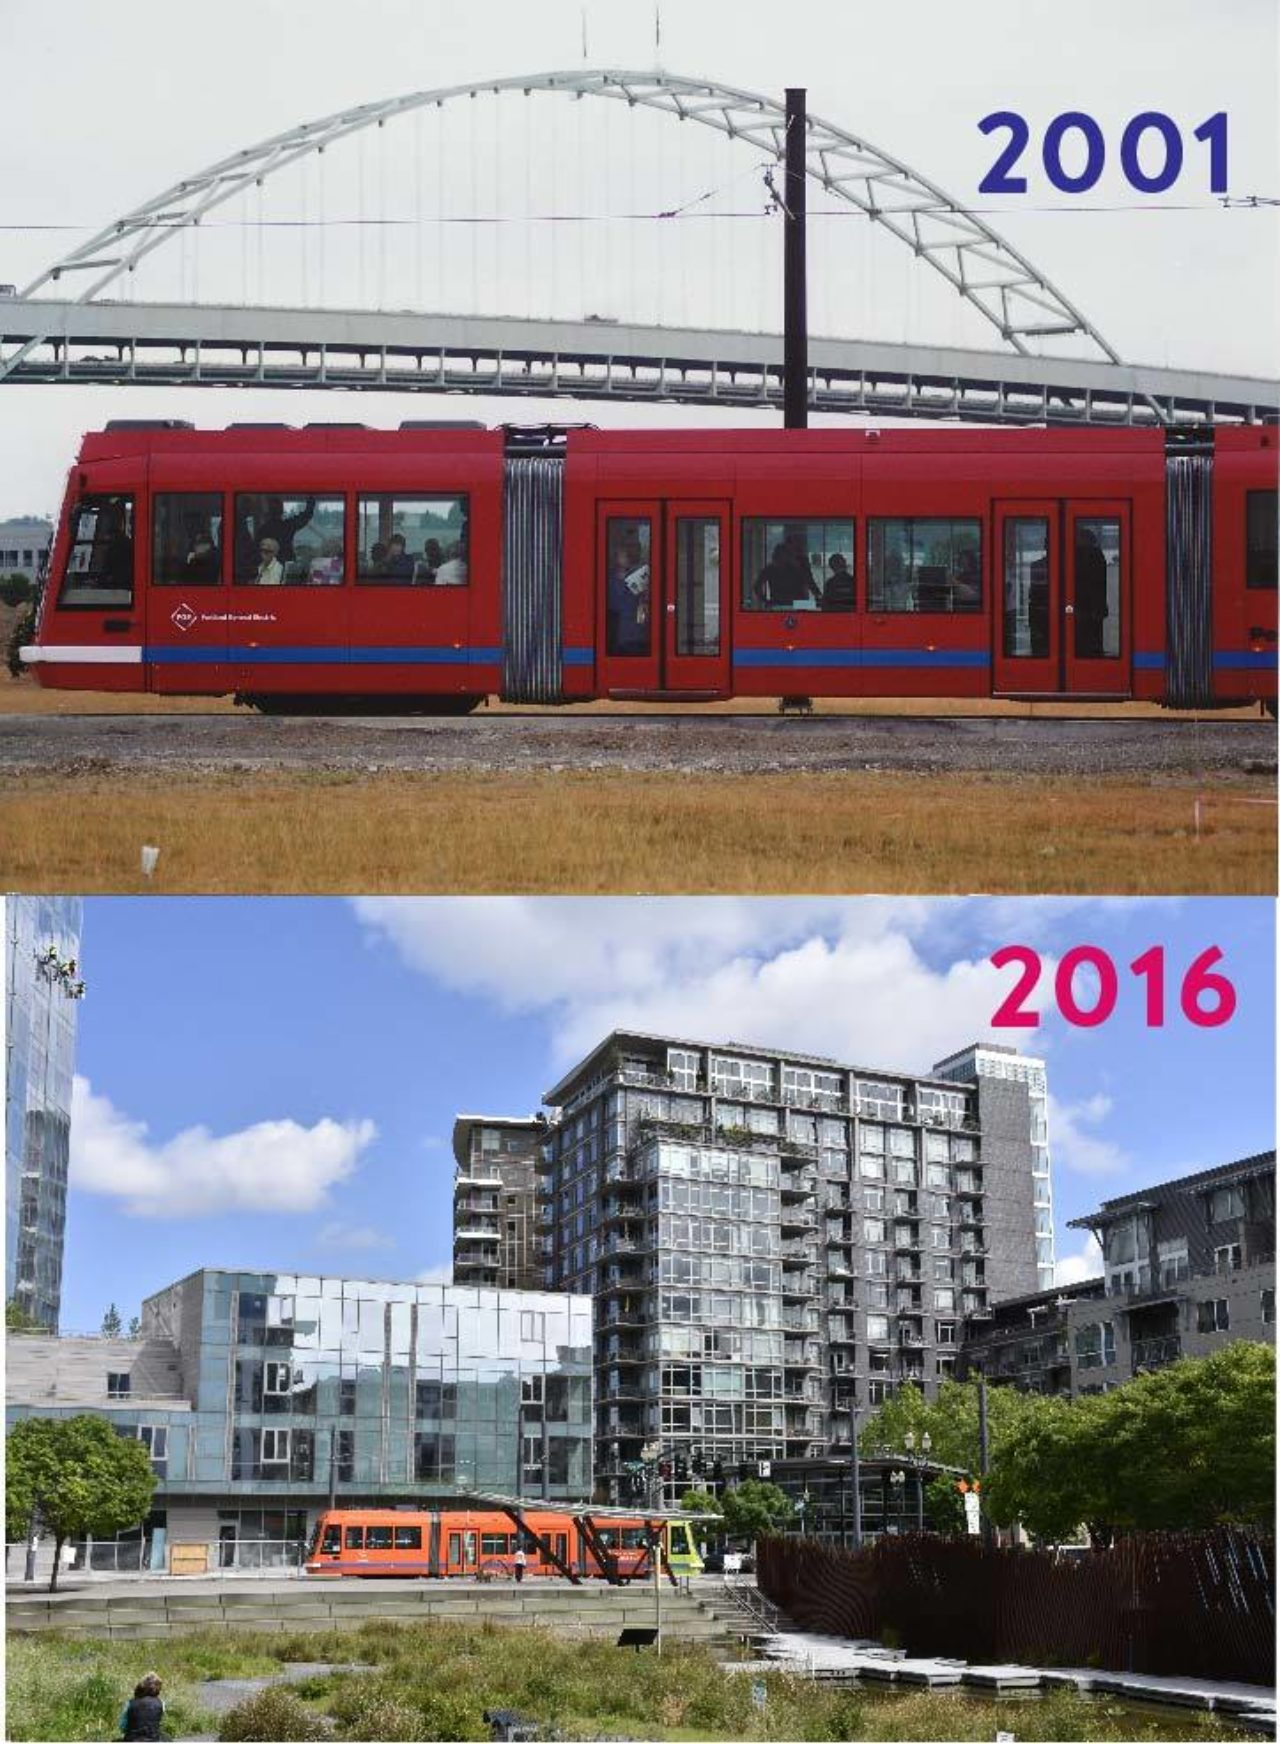 Then and Now: Streetcar on NW Northrup at 10th, 2001 and 2016